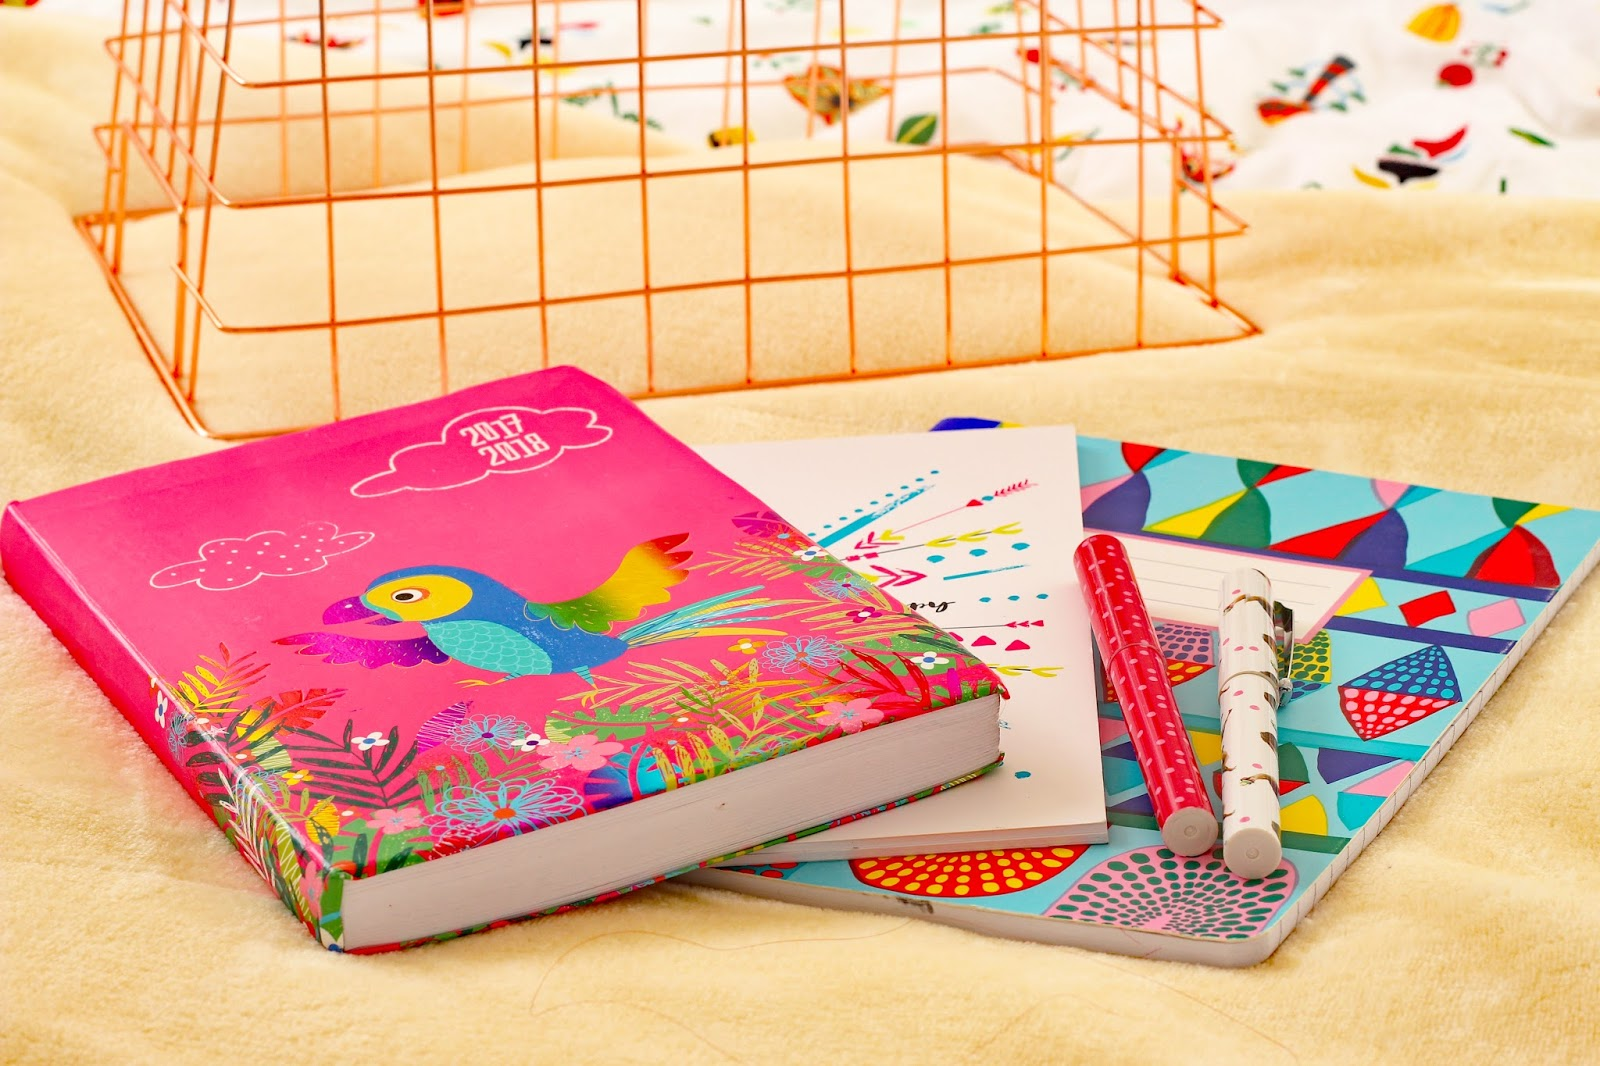 My 2018 Goals notebooks blogger lifestyle new year